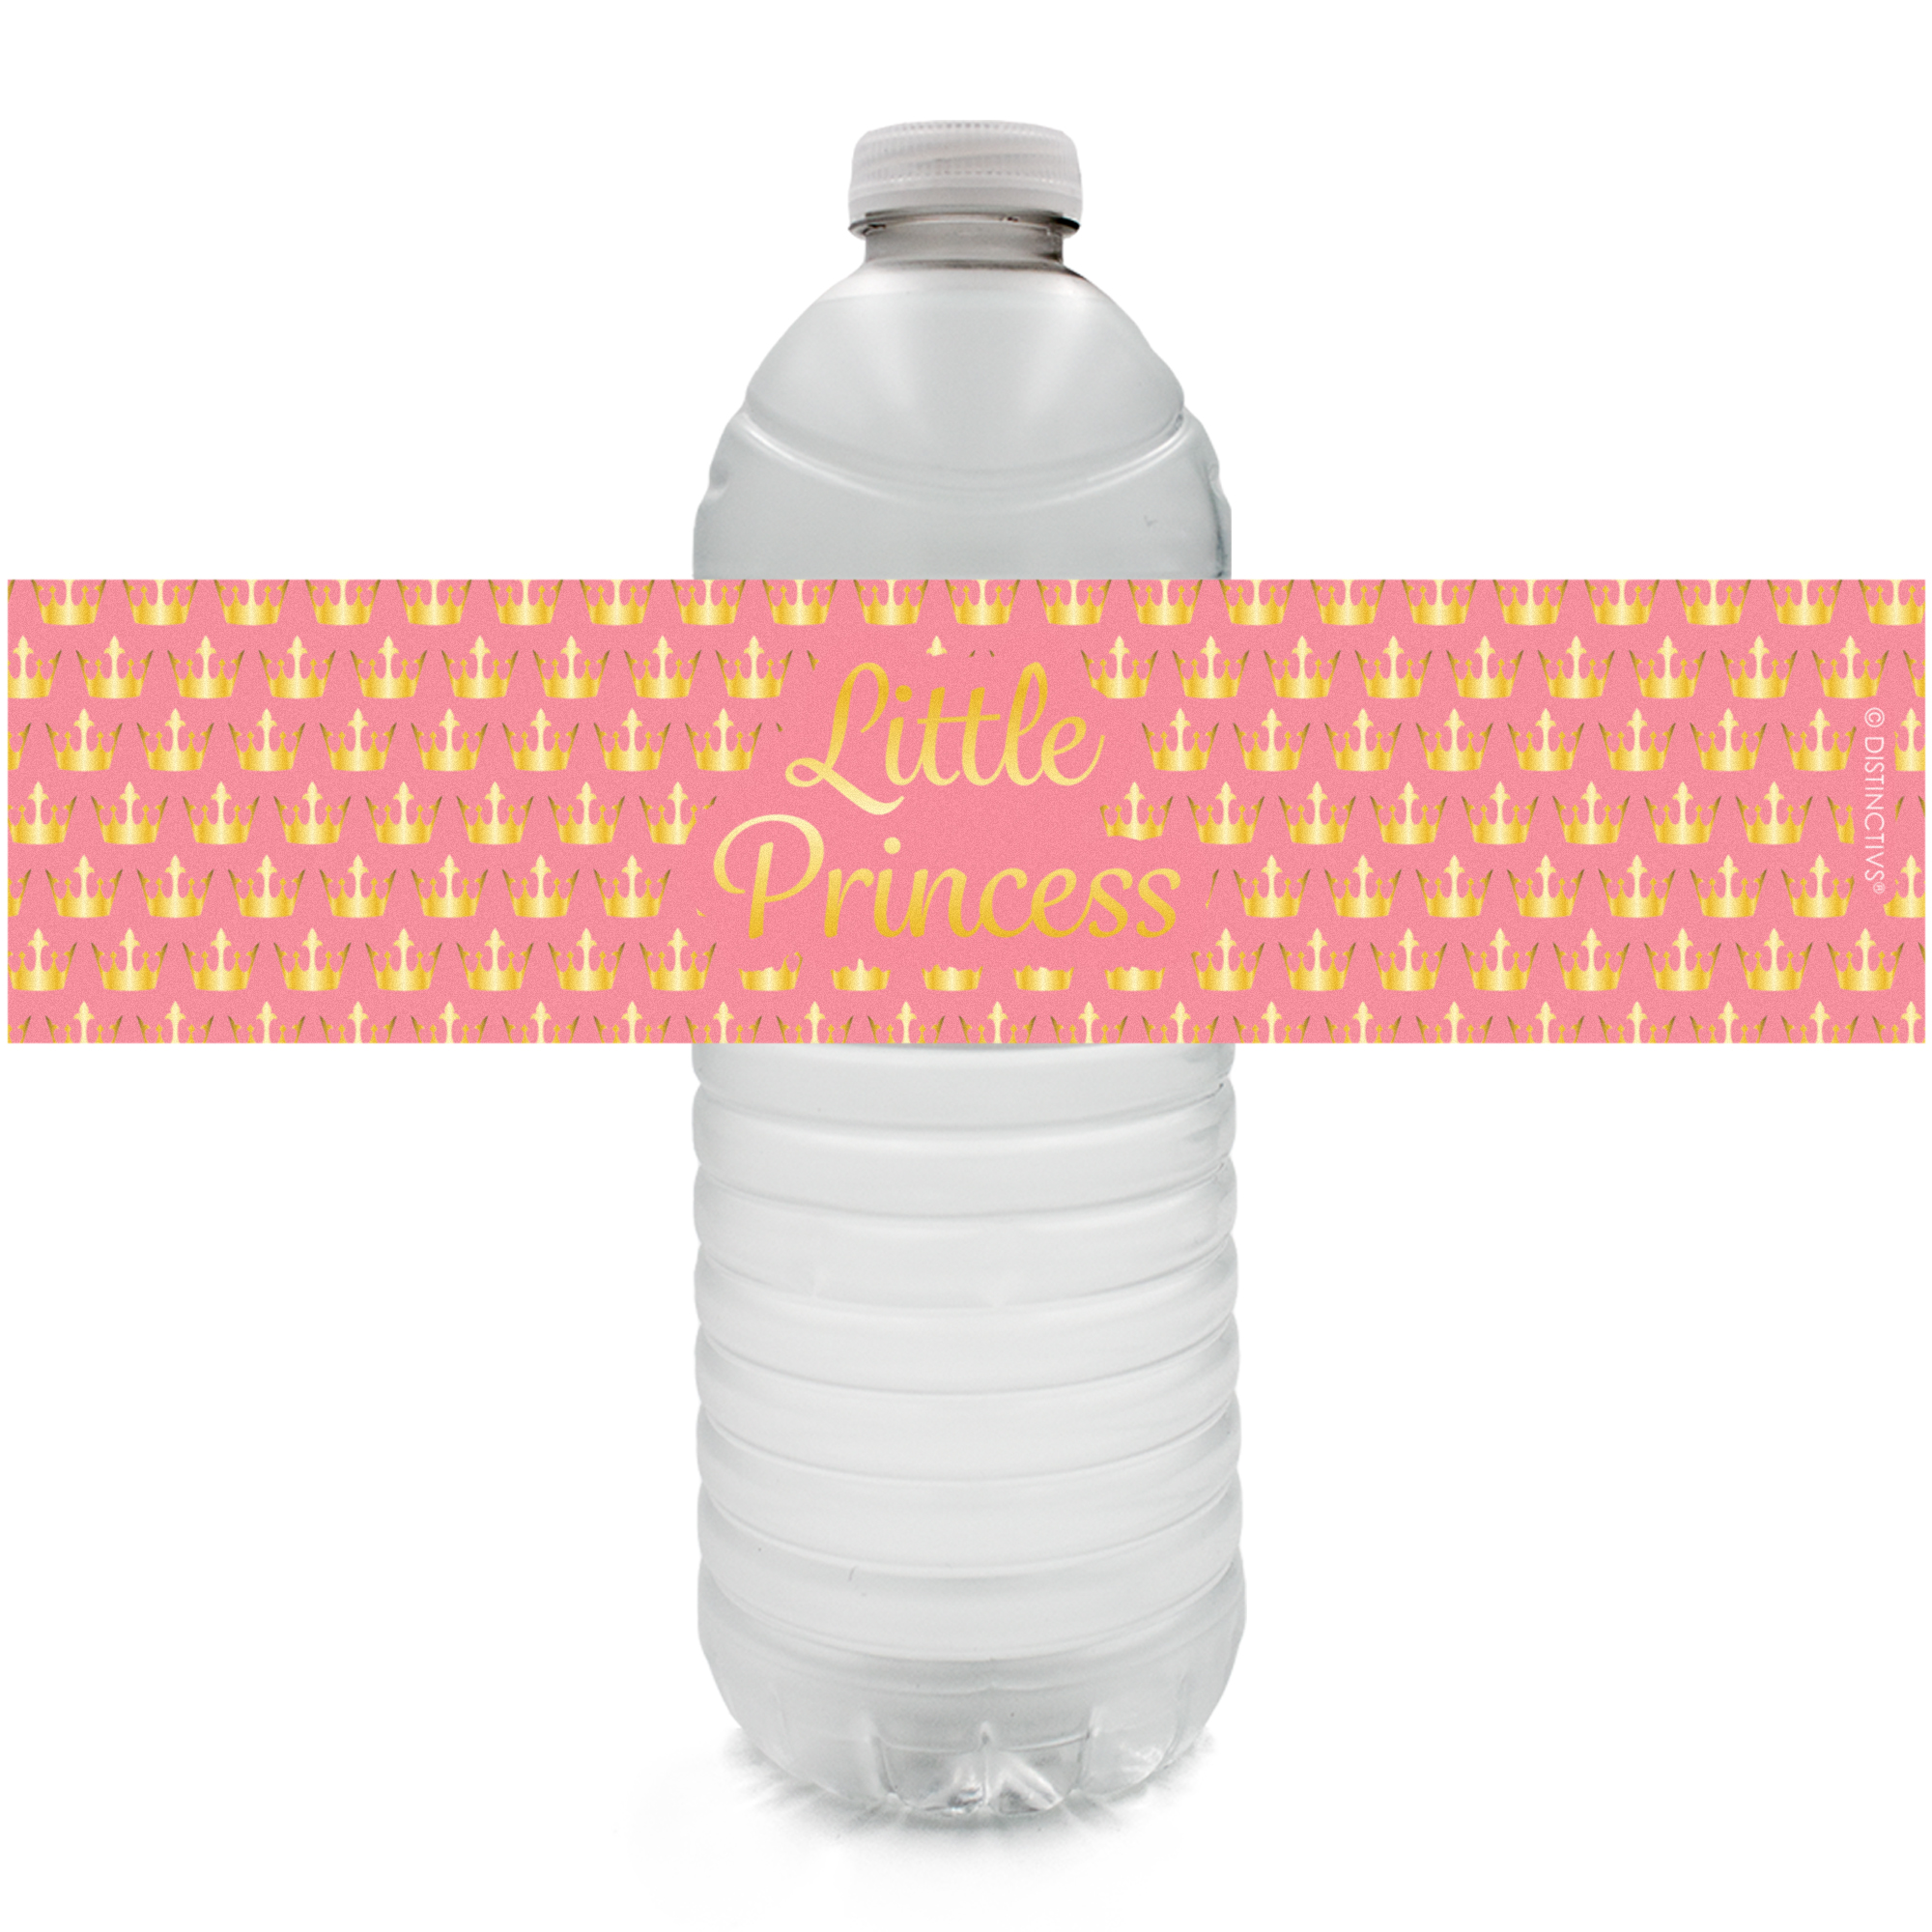 Princess Party Water Bottle Labels, 24ct - Princess Baby Shower Decorations Royal Baby Shower Party Supplies Little Princess Baby Shower Favors- 24 Count Sticker Labels